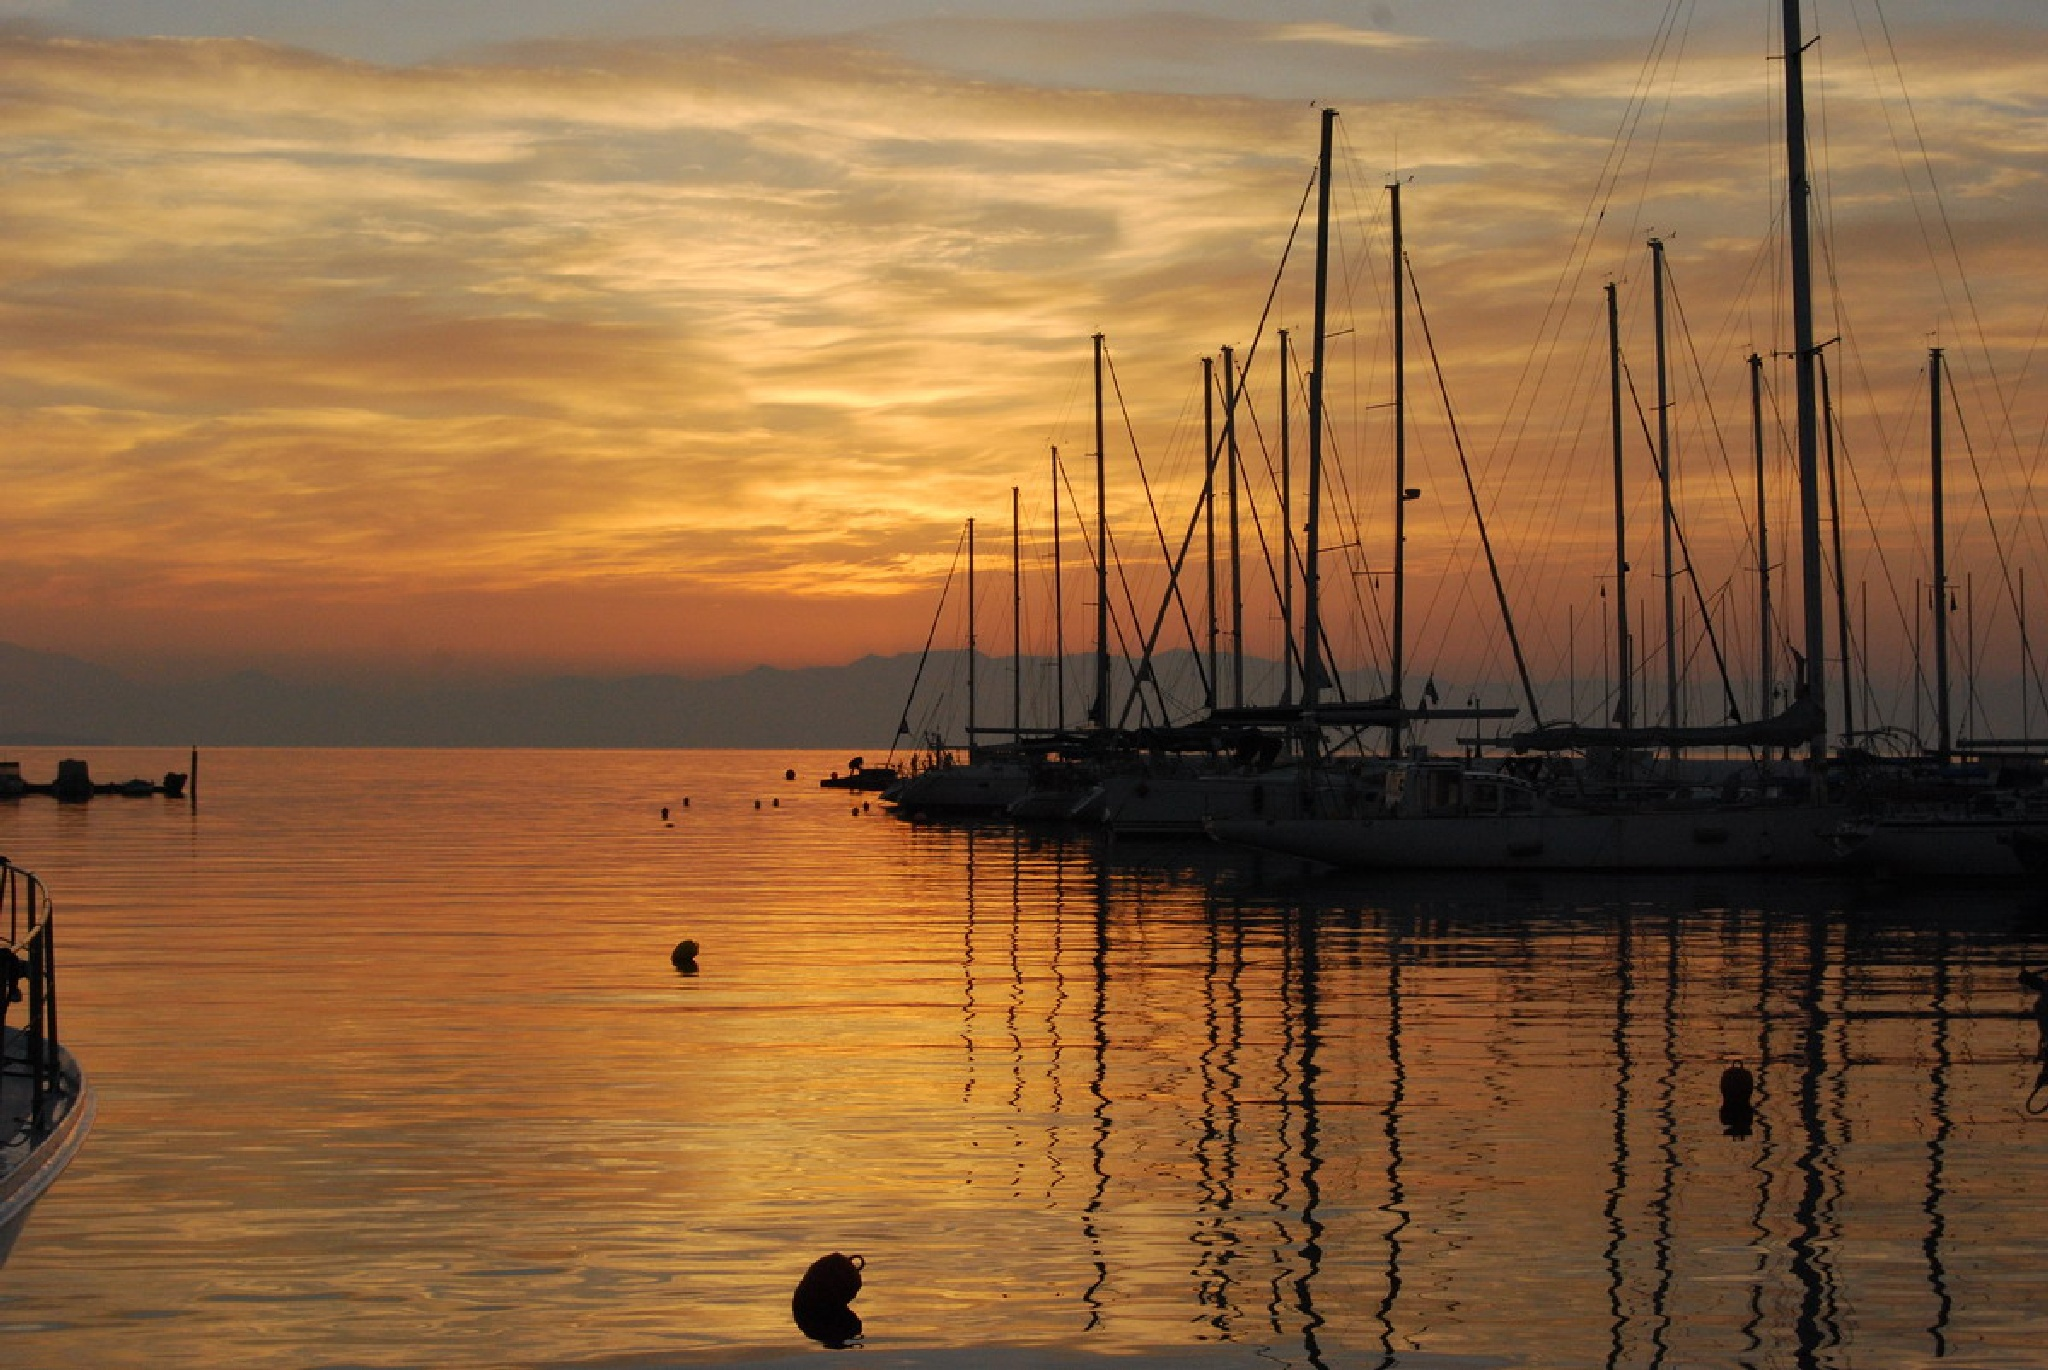 harbor at sunset by Lampros Ntoulas